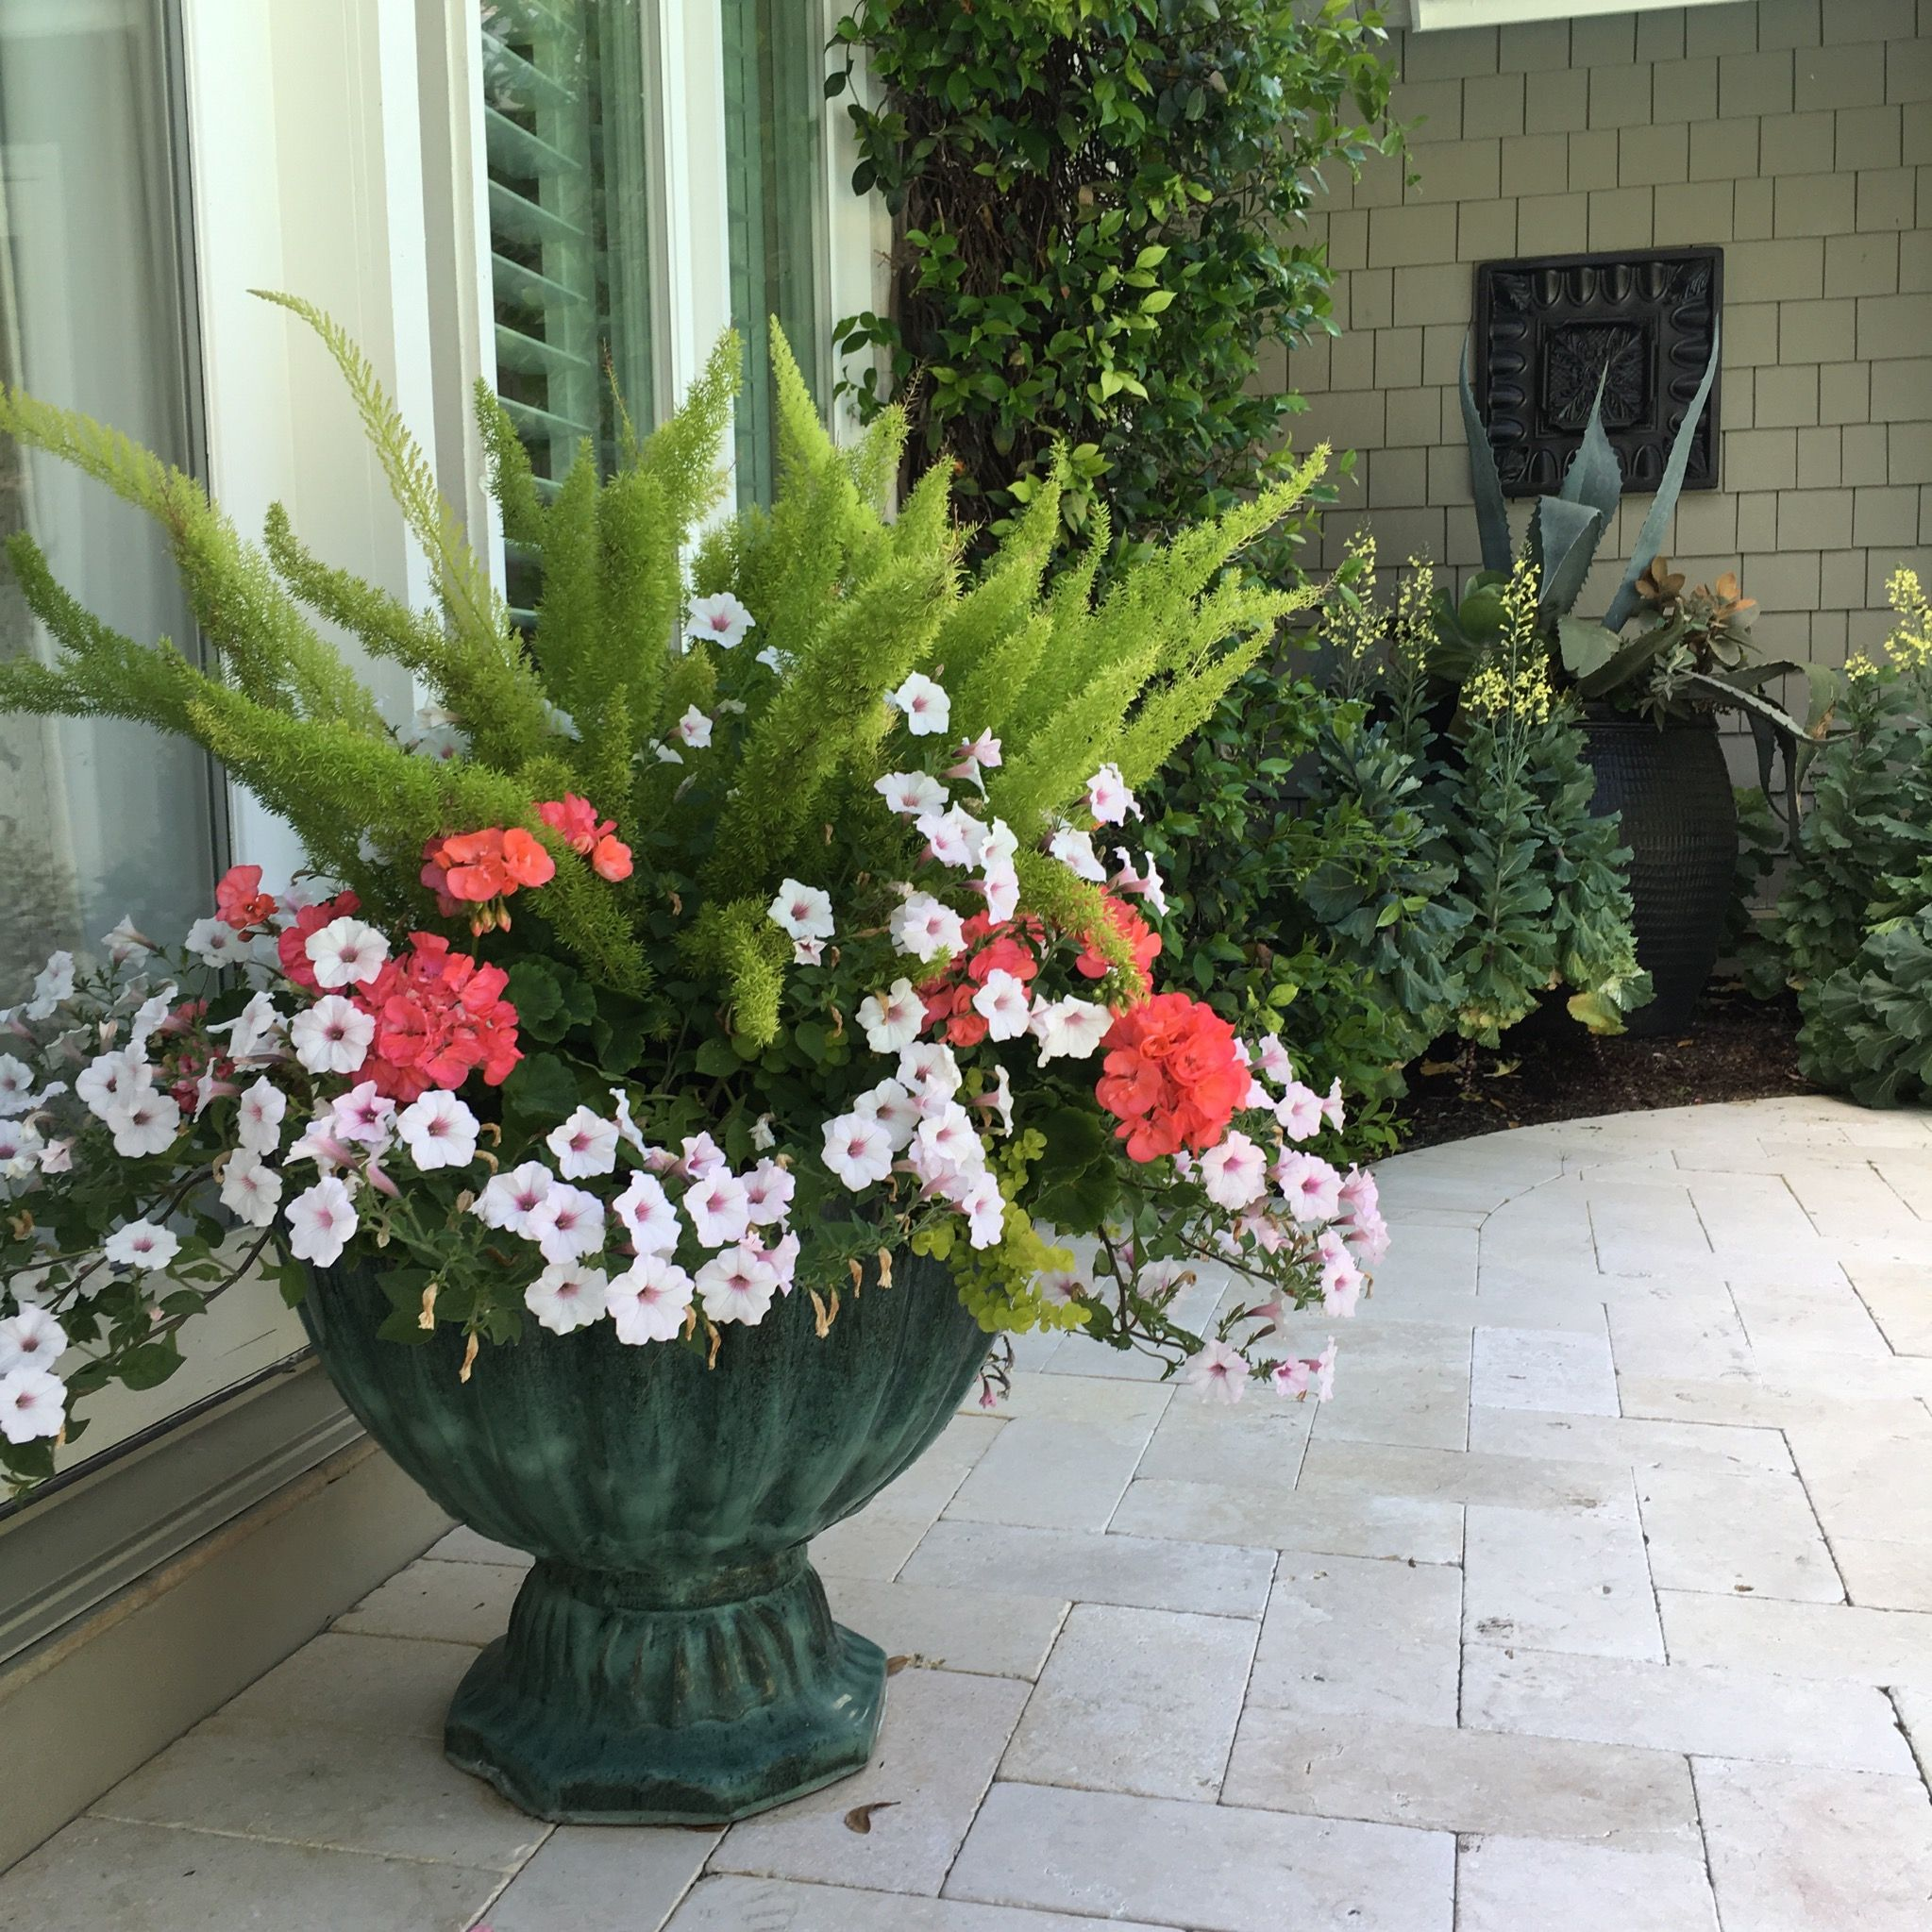 Foxtail Fern Geranium And Petunia Vine Garden Market Flower Pots Outdoor Container Flowers Container Plants